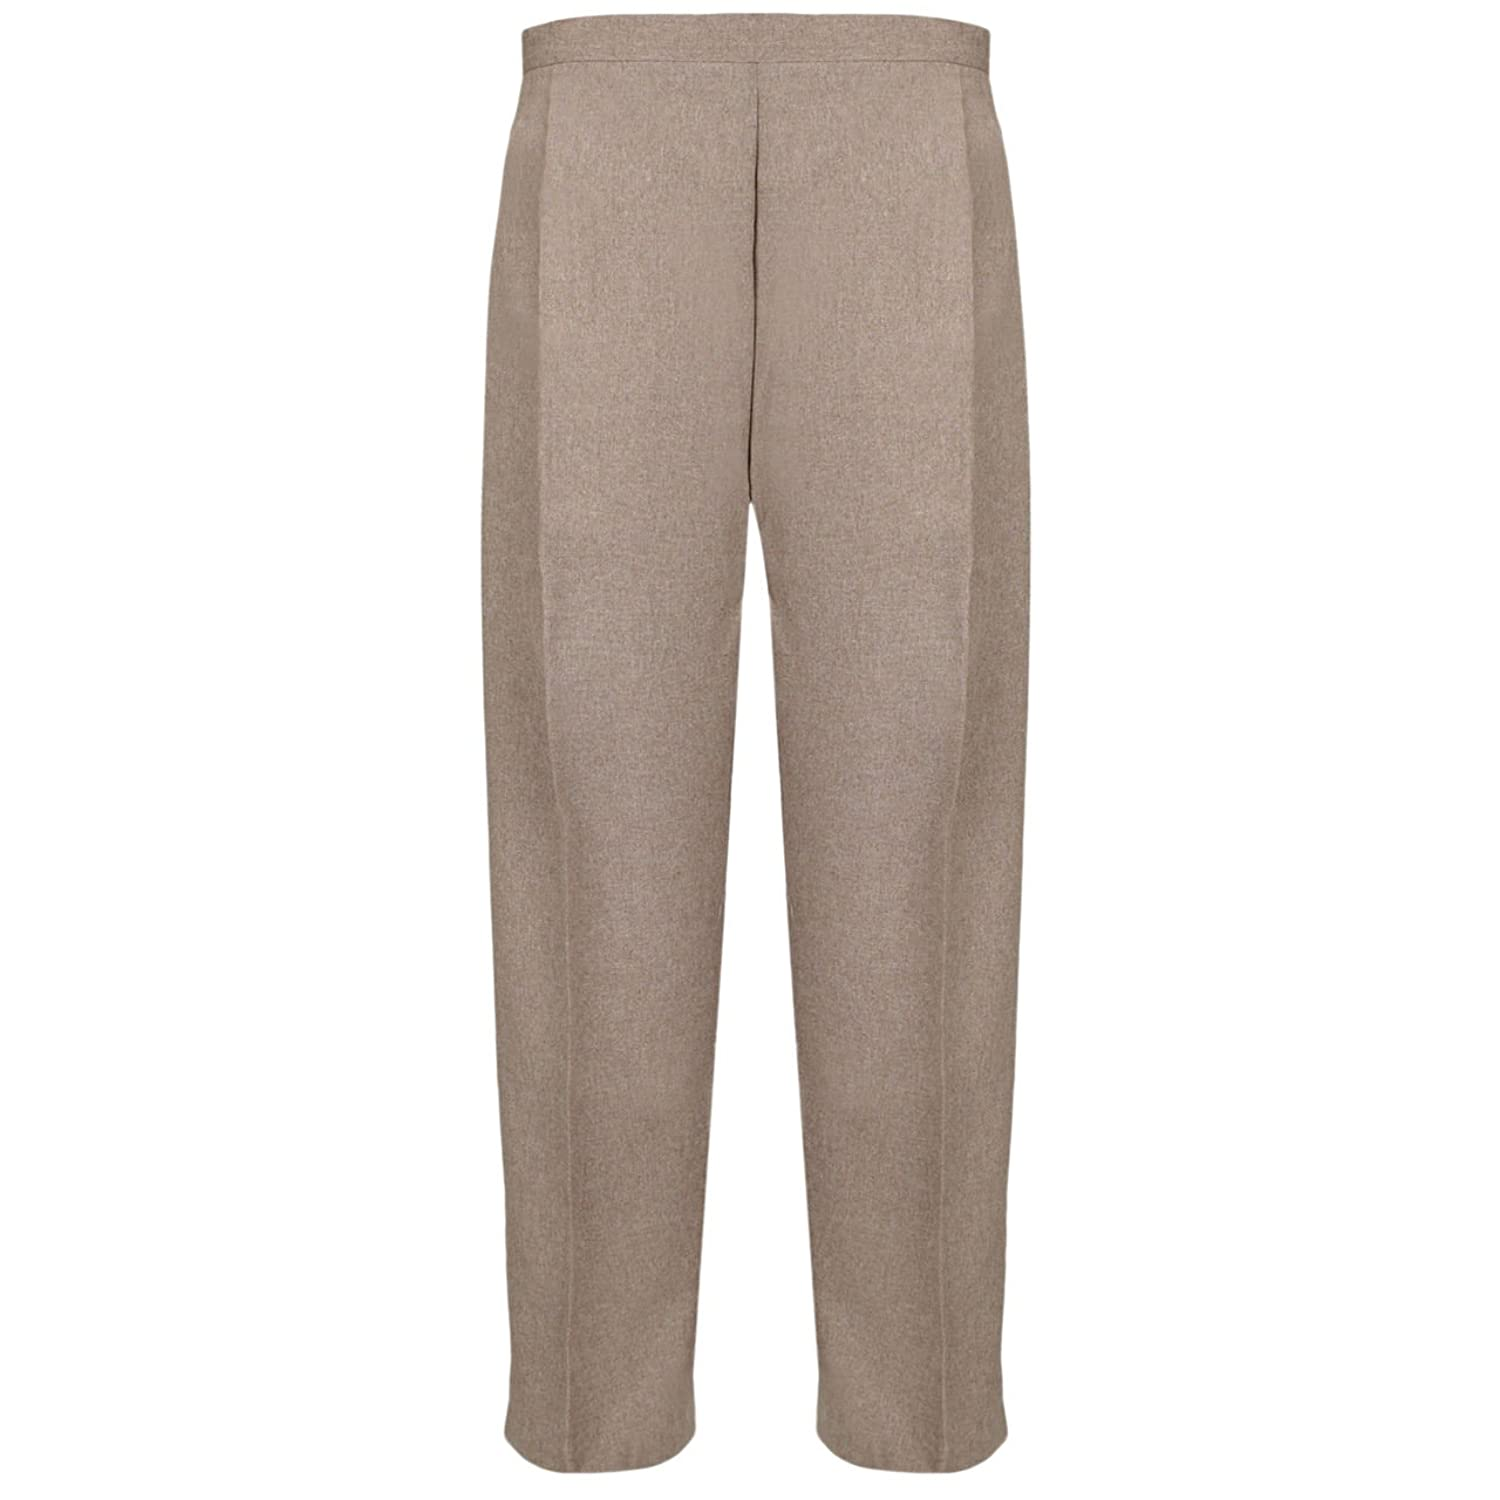 Ladies Womens Half Elasticated Pants Stretch Waist Casual Office Work Formal Trousers